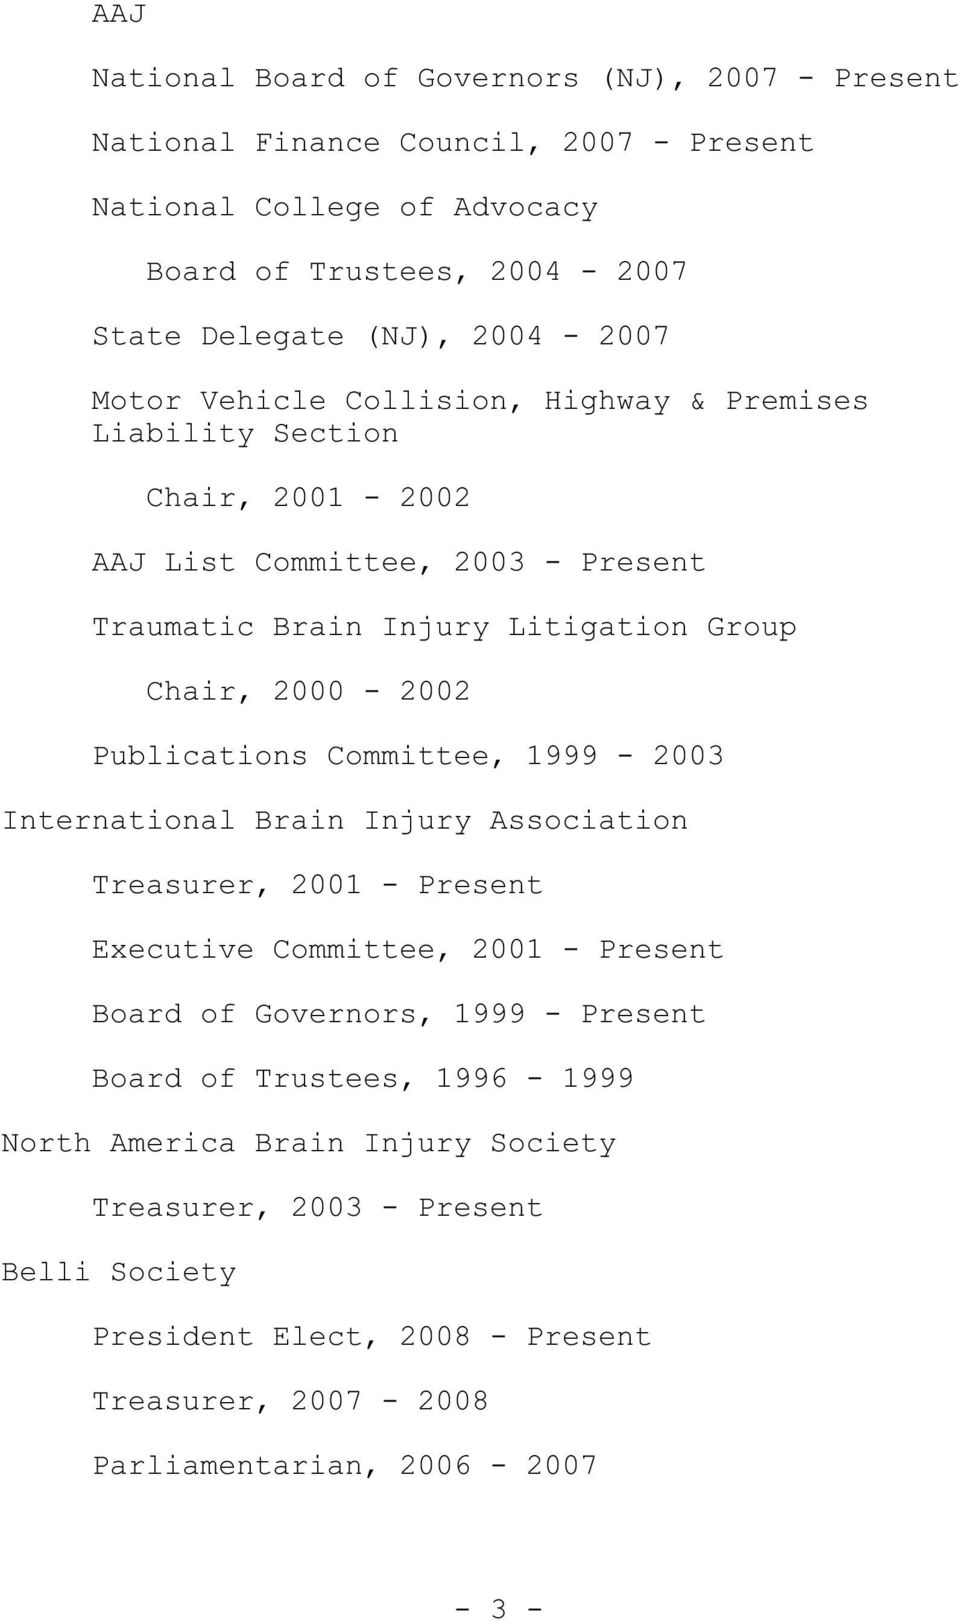 2000-2002 Publications Committee, 1999-2003 International Brain Injury Association Treasurer, 2001 - Present Executive Committee, 2001 - Present Board of Governors, 1999 -